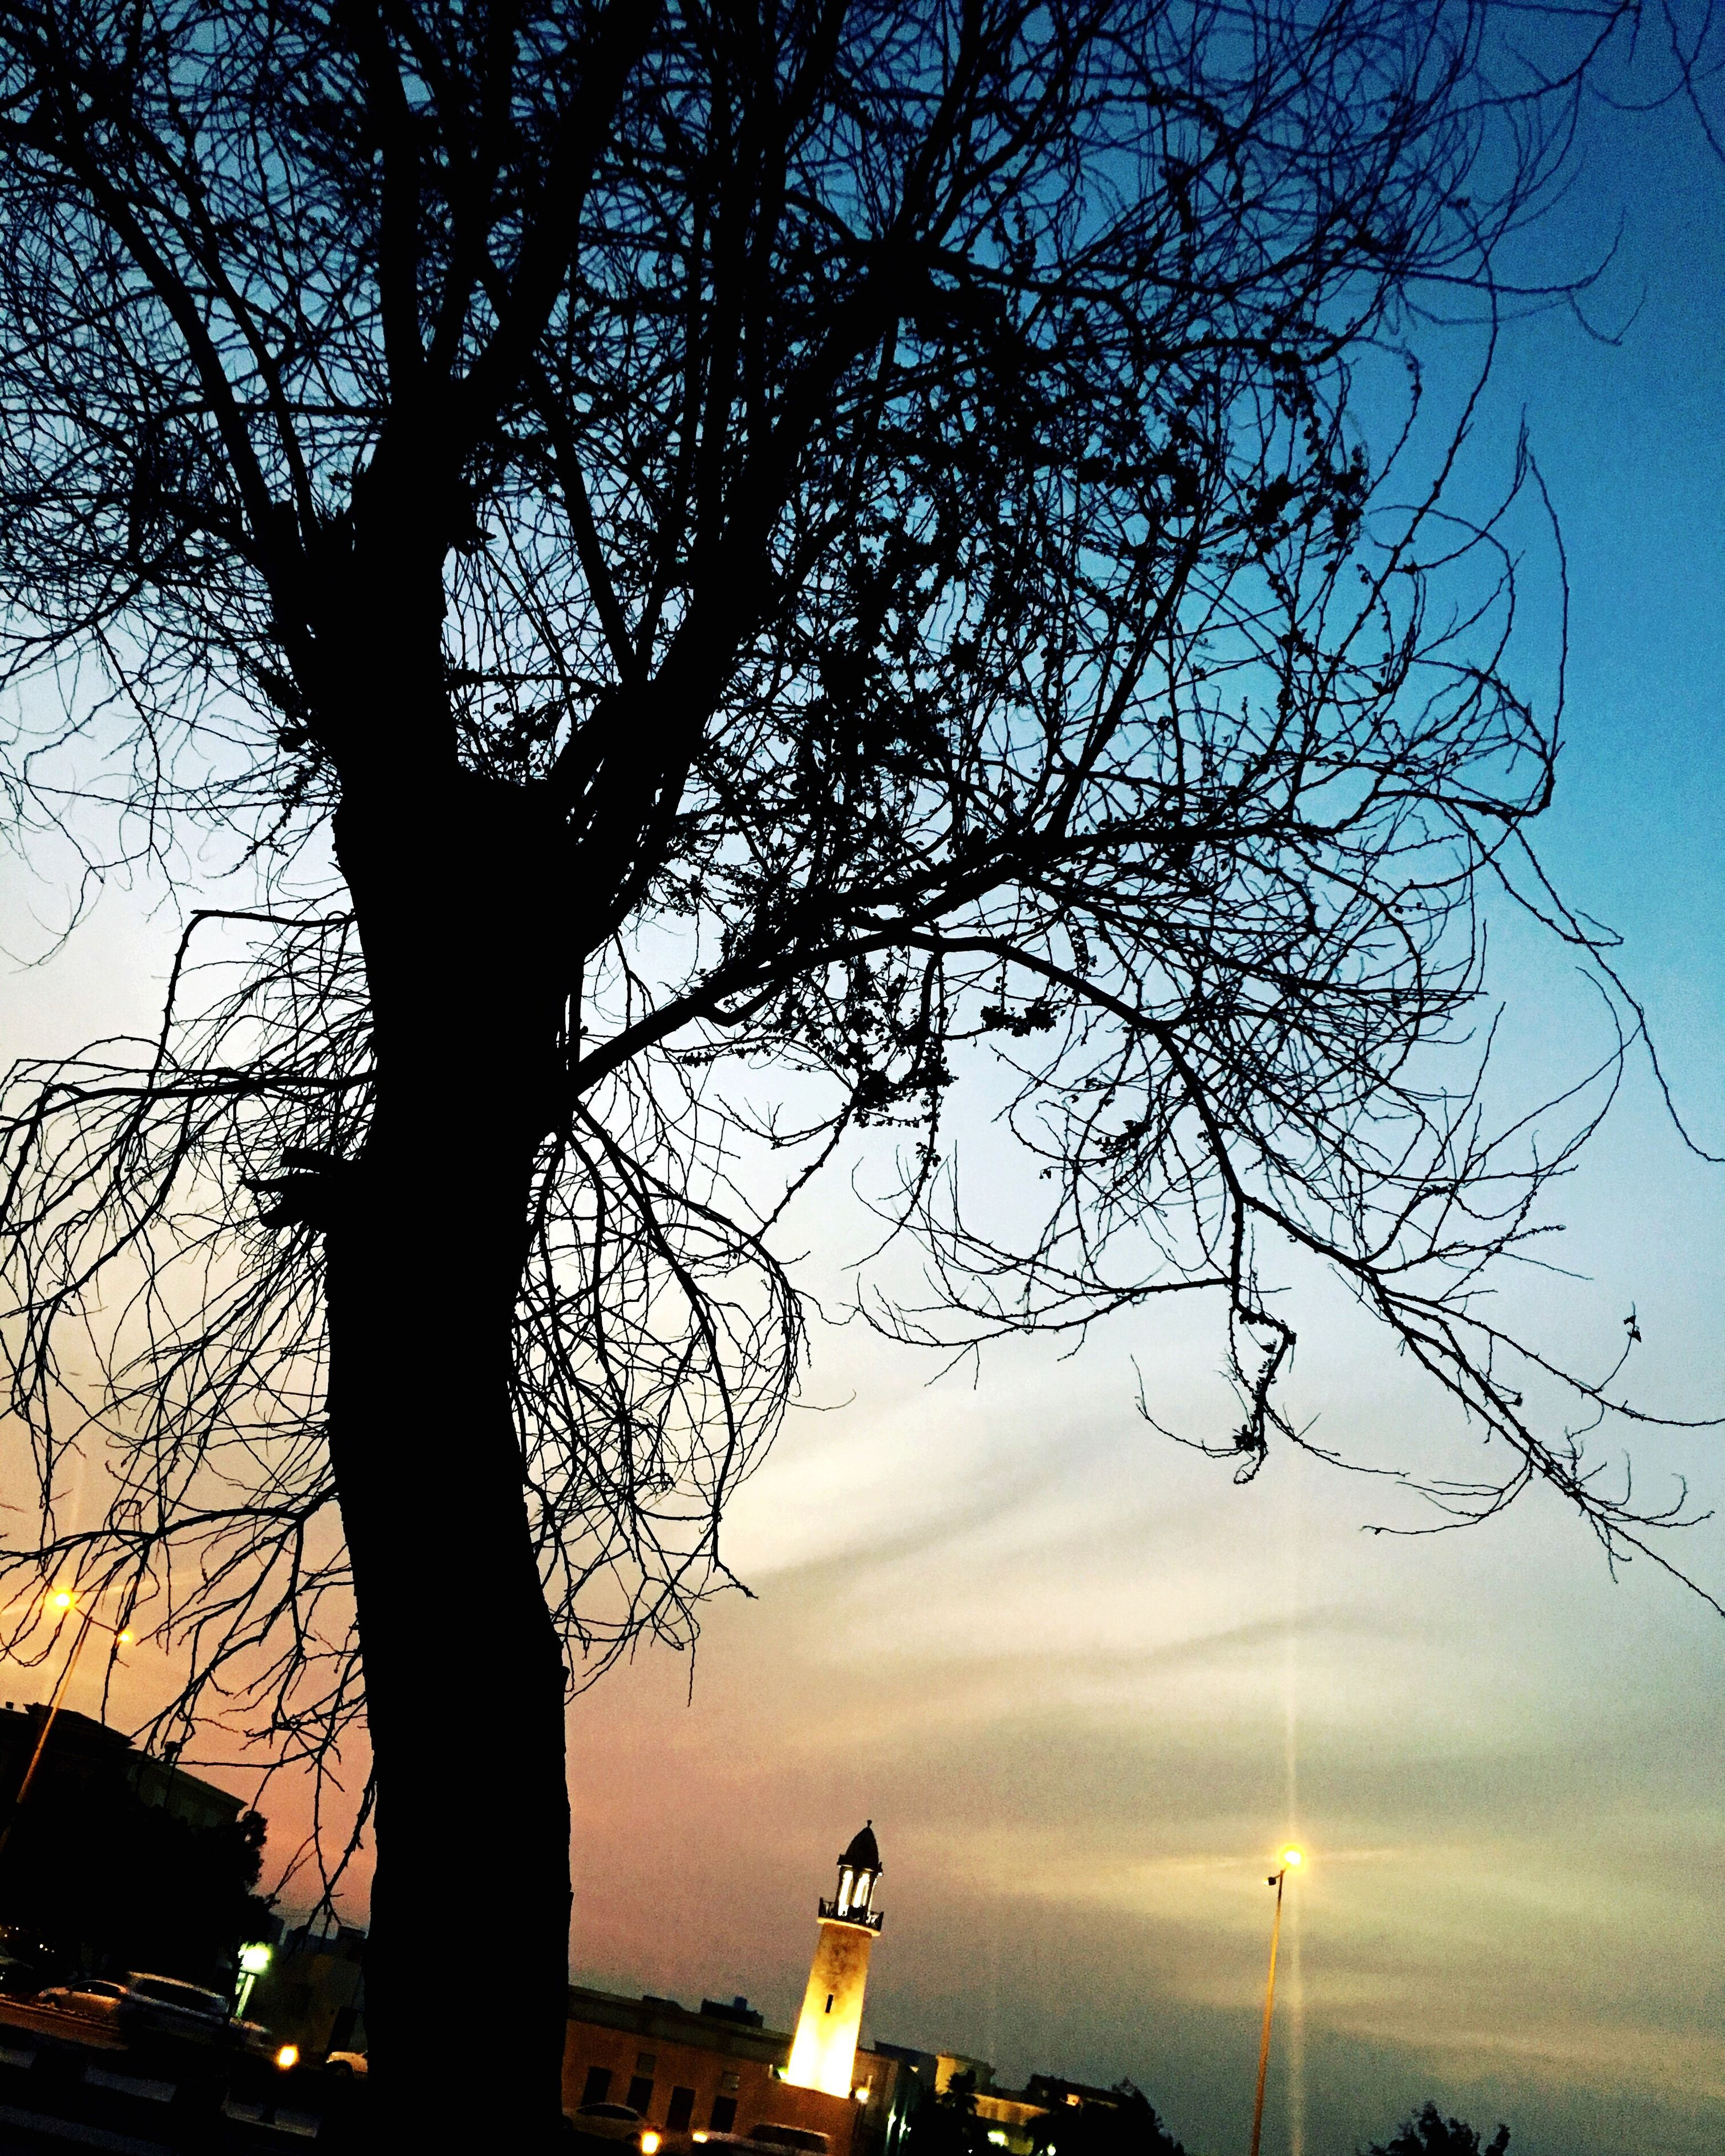 tree, sky, sunset, nature, silhouette, beauty in nature, outdoors, tranquility, no people, branch, scenics, foreground, day, architecture